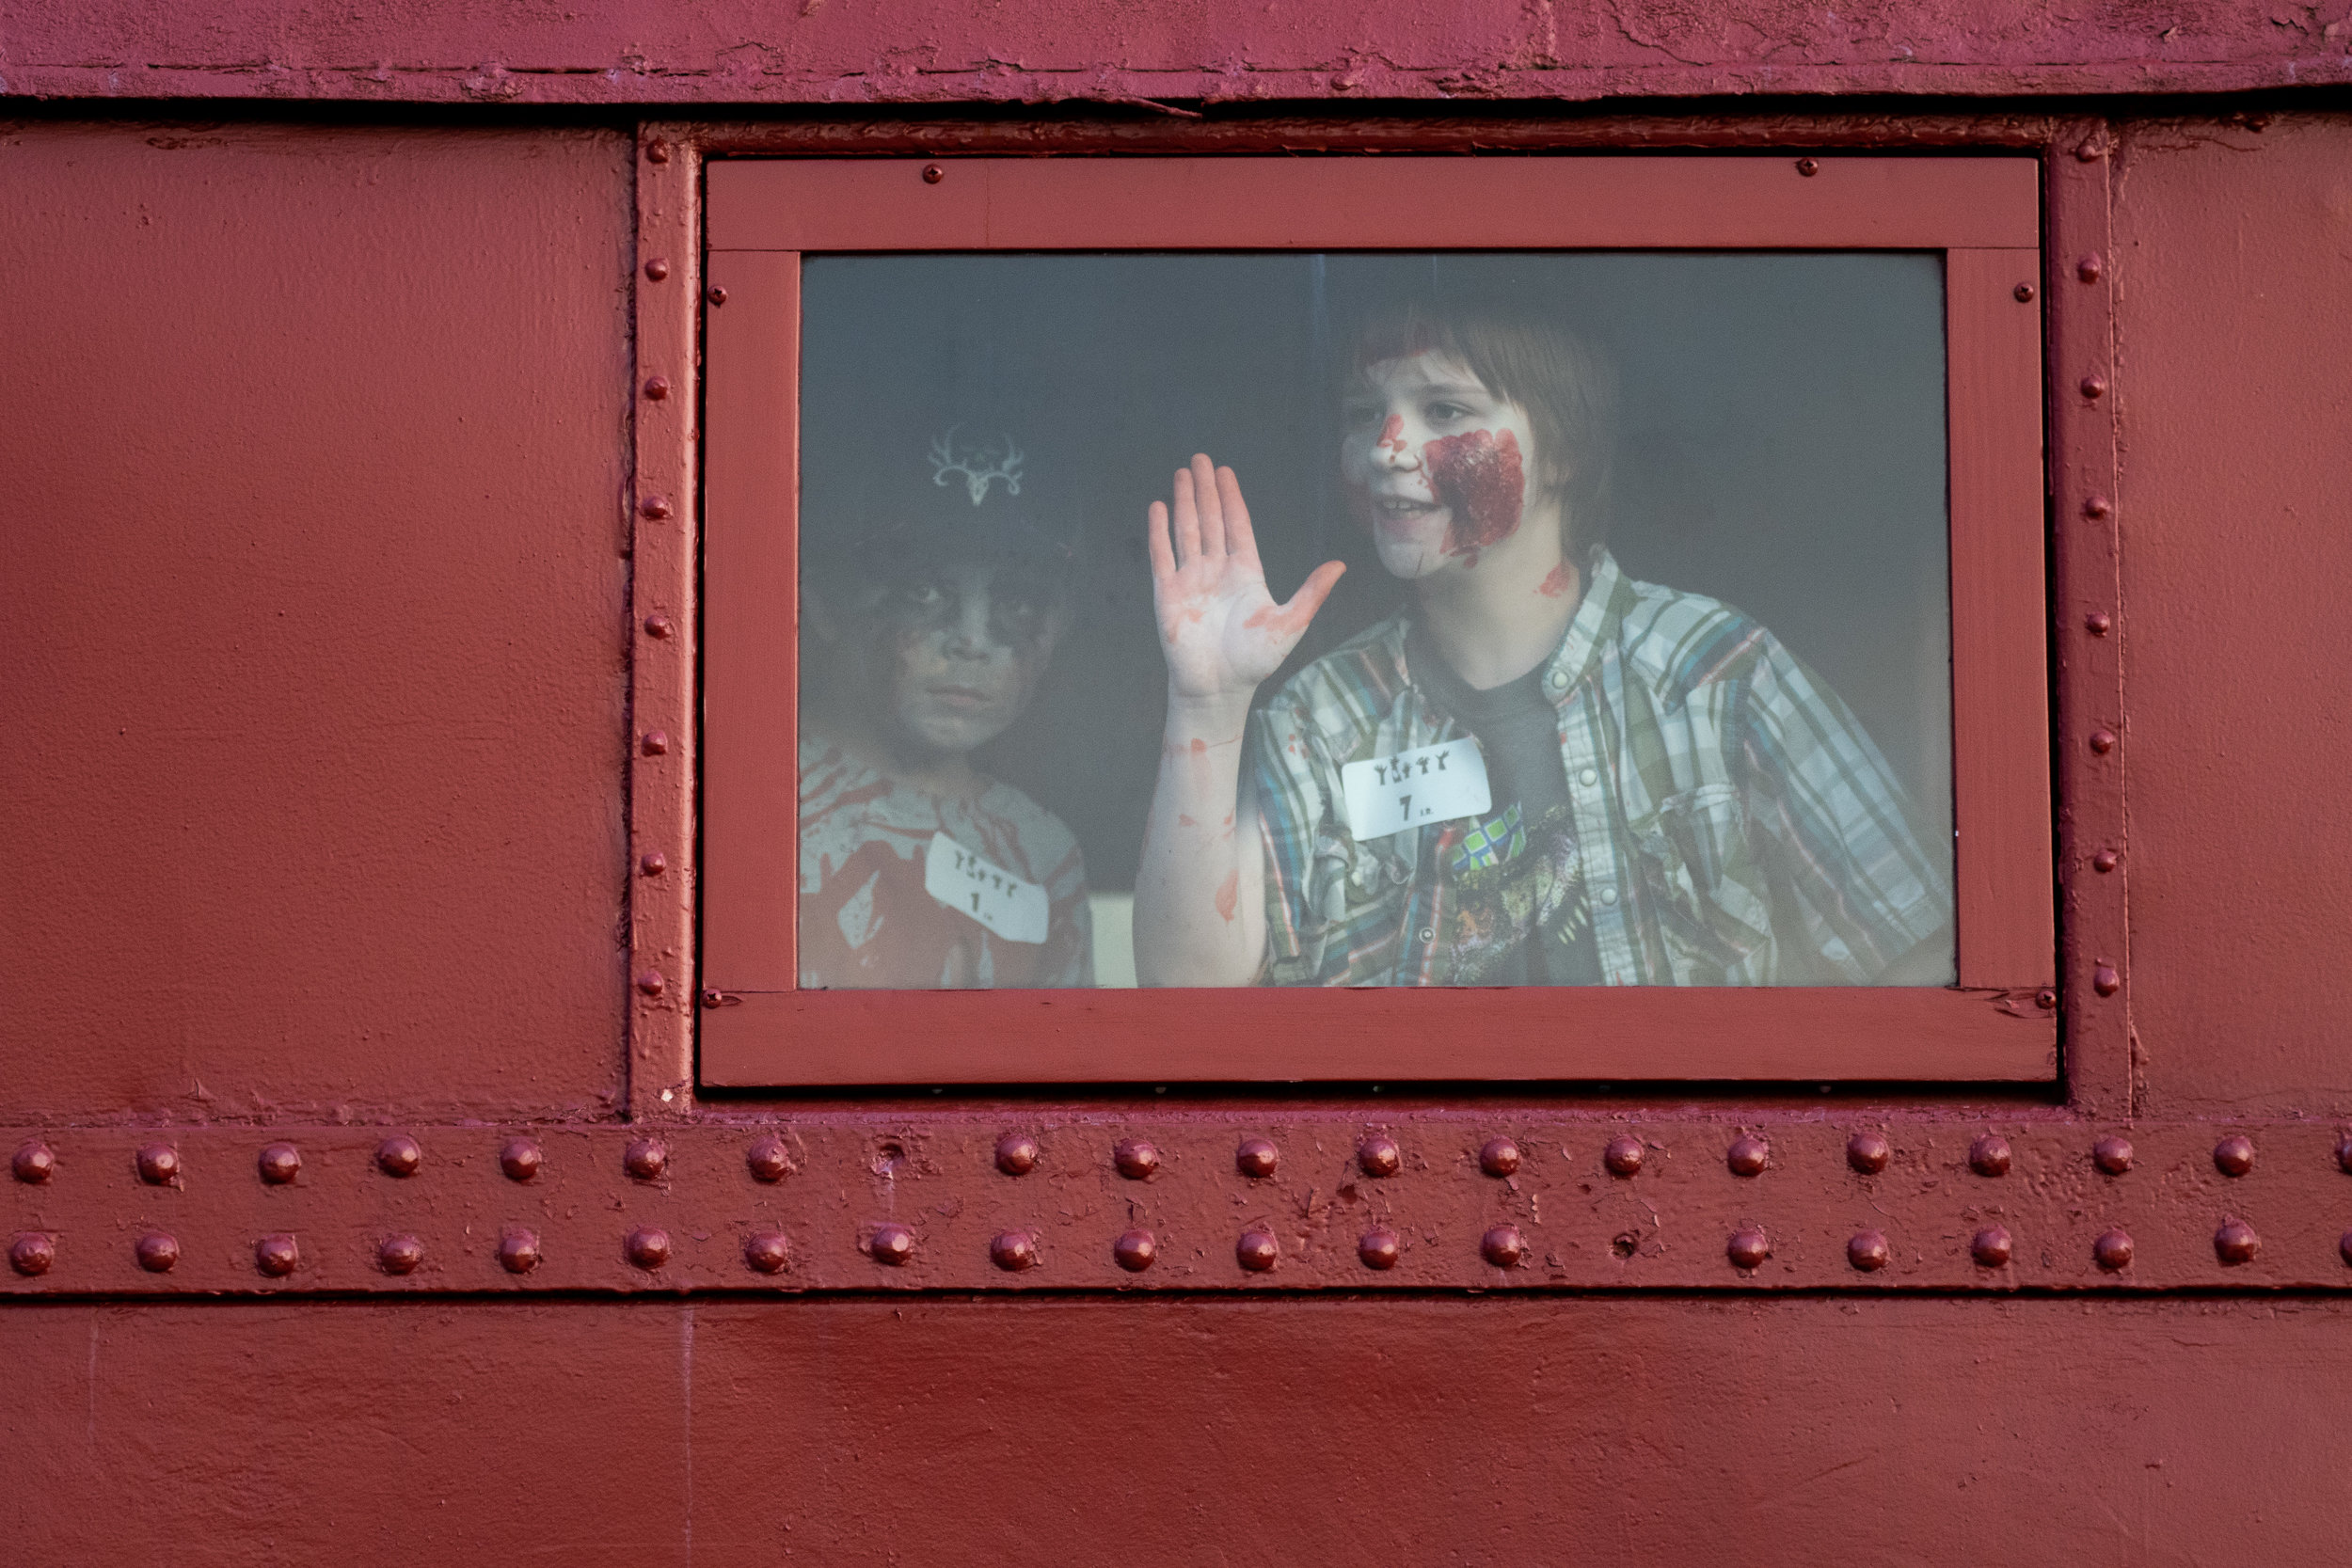 (Left to right) Ashten Coberoy, 8, and Connor Pierce, 11, of Altoona play in a rail car during the ZombieTown USA Zombie Prom at the Altoona Railroaders Memorial Museum on Friday, Oct. 5th, 2018.